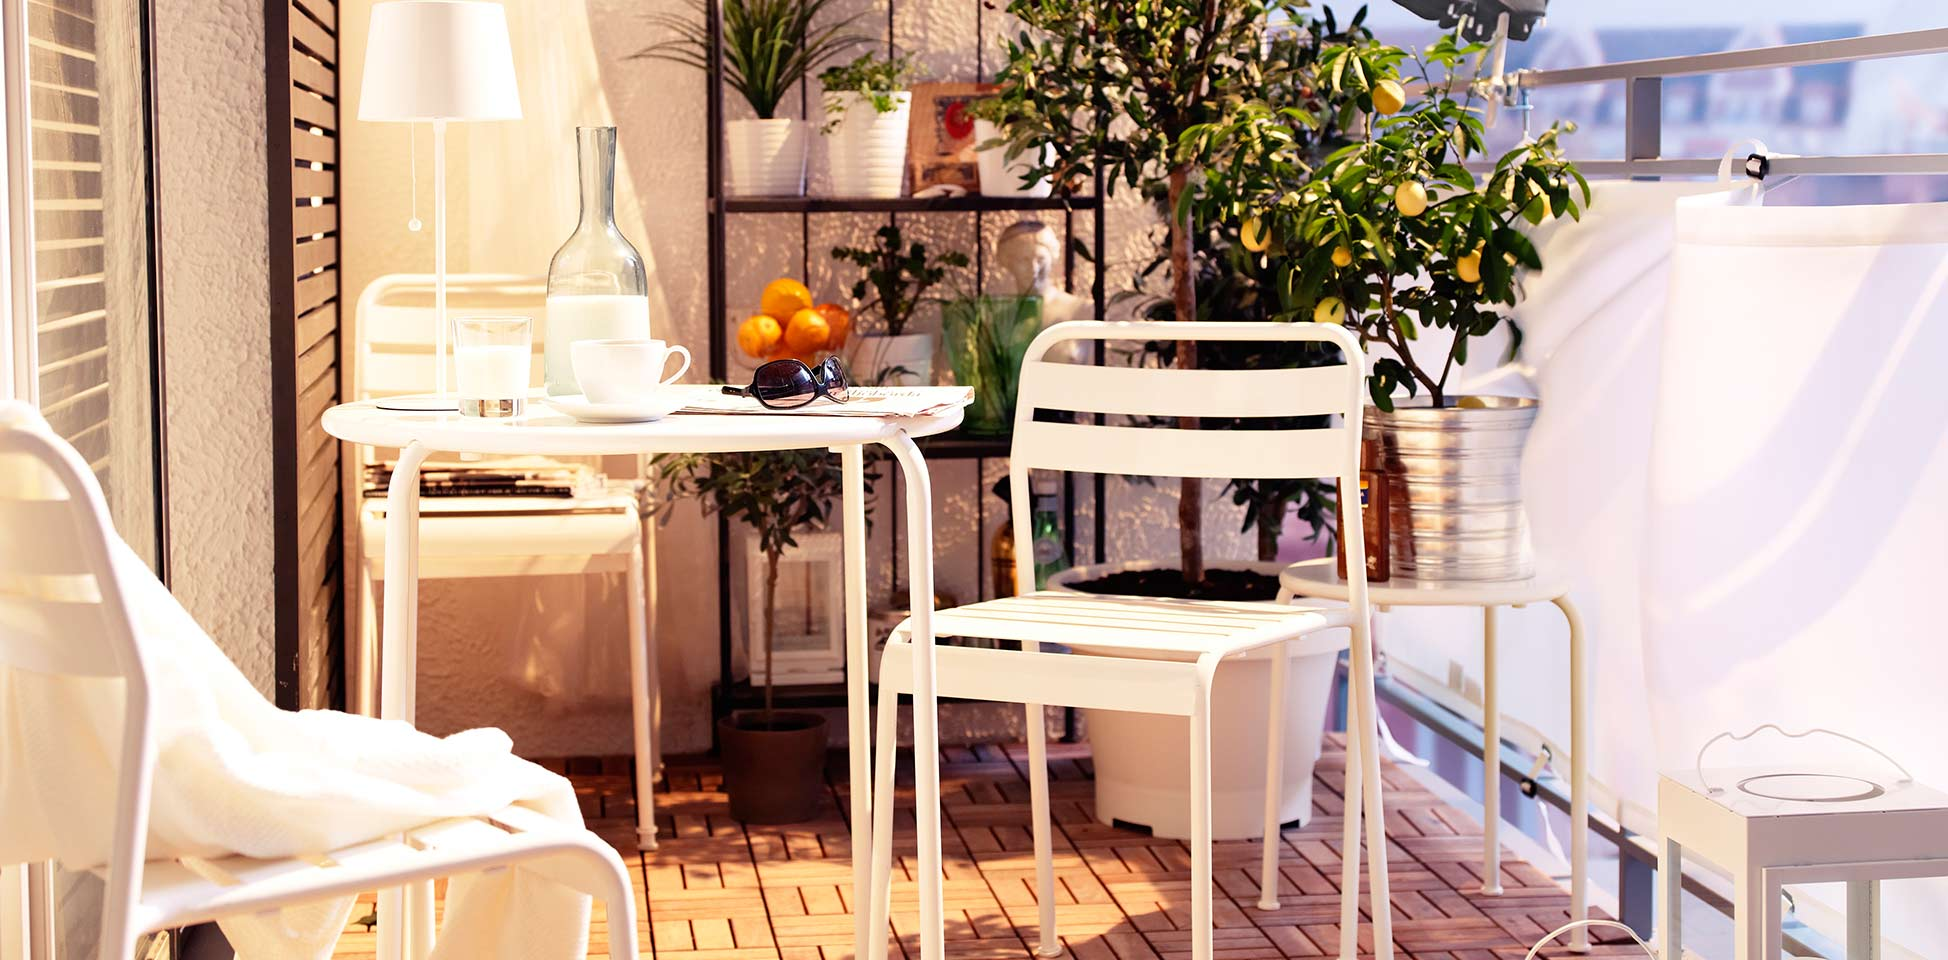 How to create a comfortable and relaxing space on your balcony